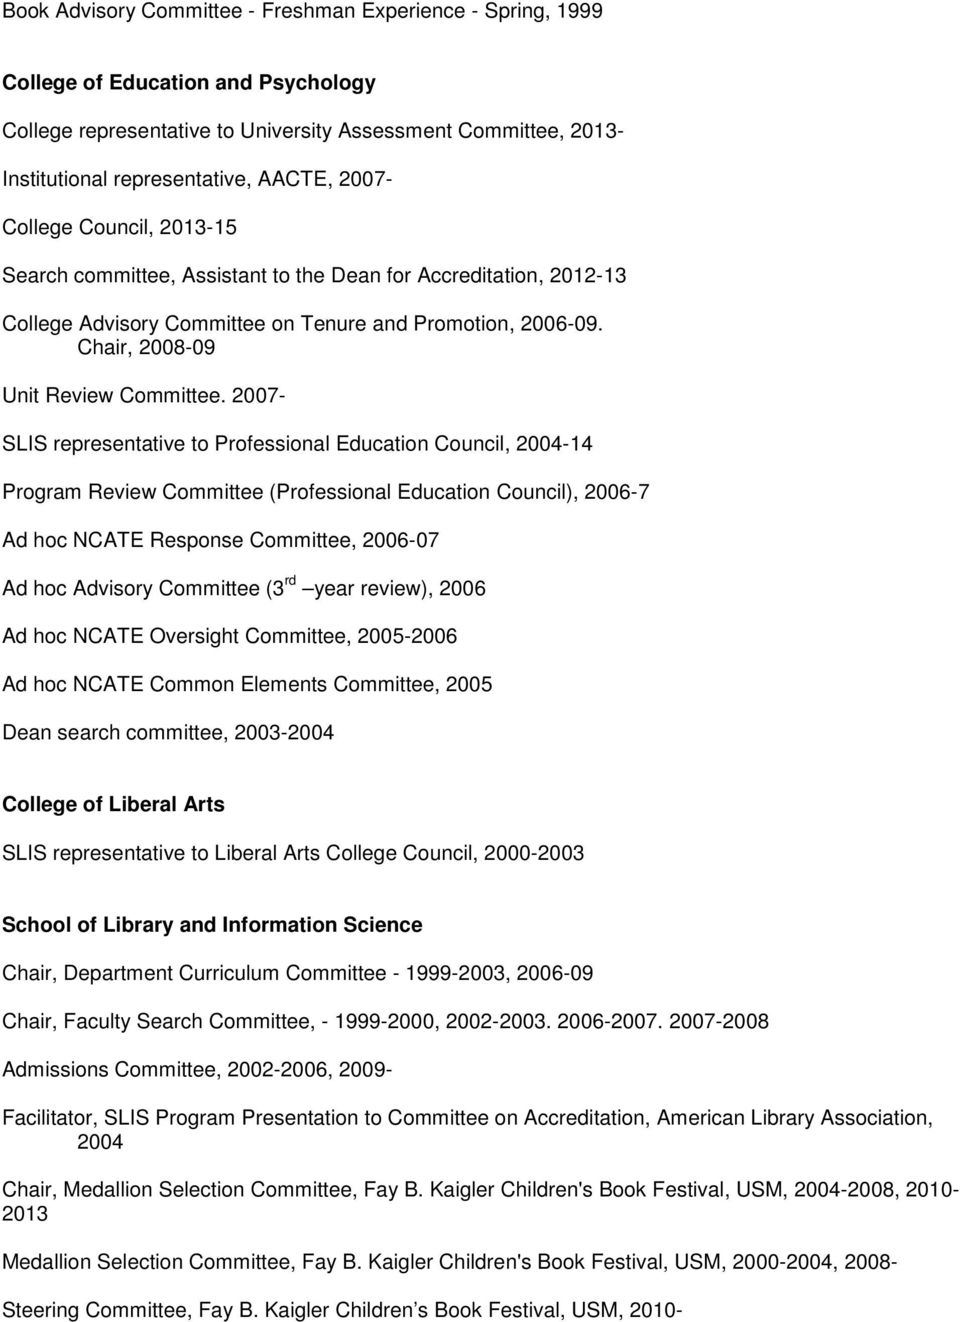 2007- SLIS representative to Professional Education Council, 2004-14 Program Review Committee (Professional Education Council), 2006-7 Ad hoc NCATE Response Committee, 2006-07 Ad hoc Advisory